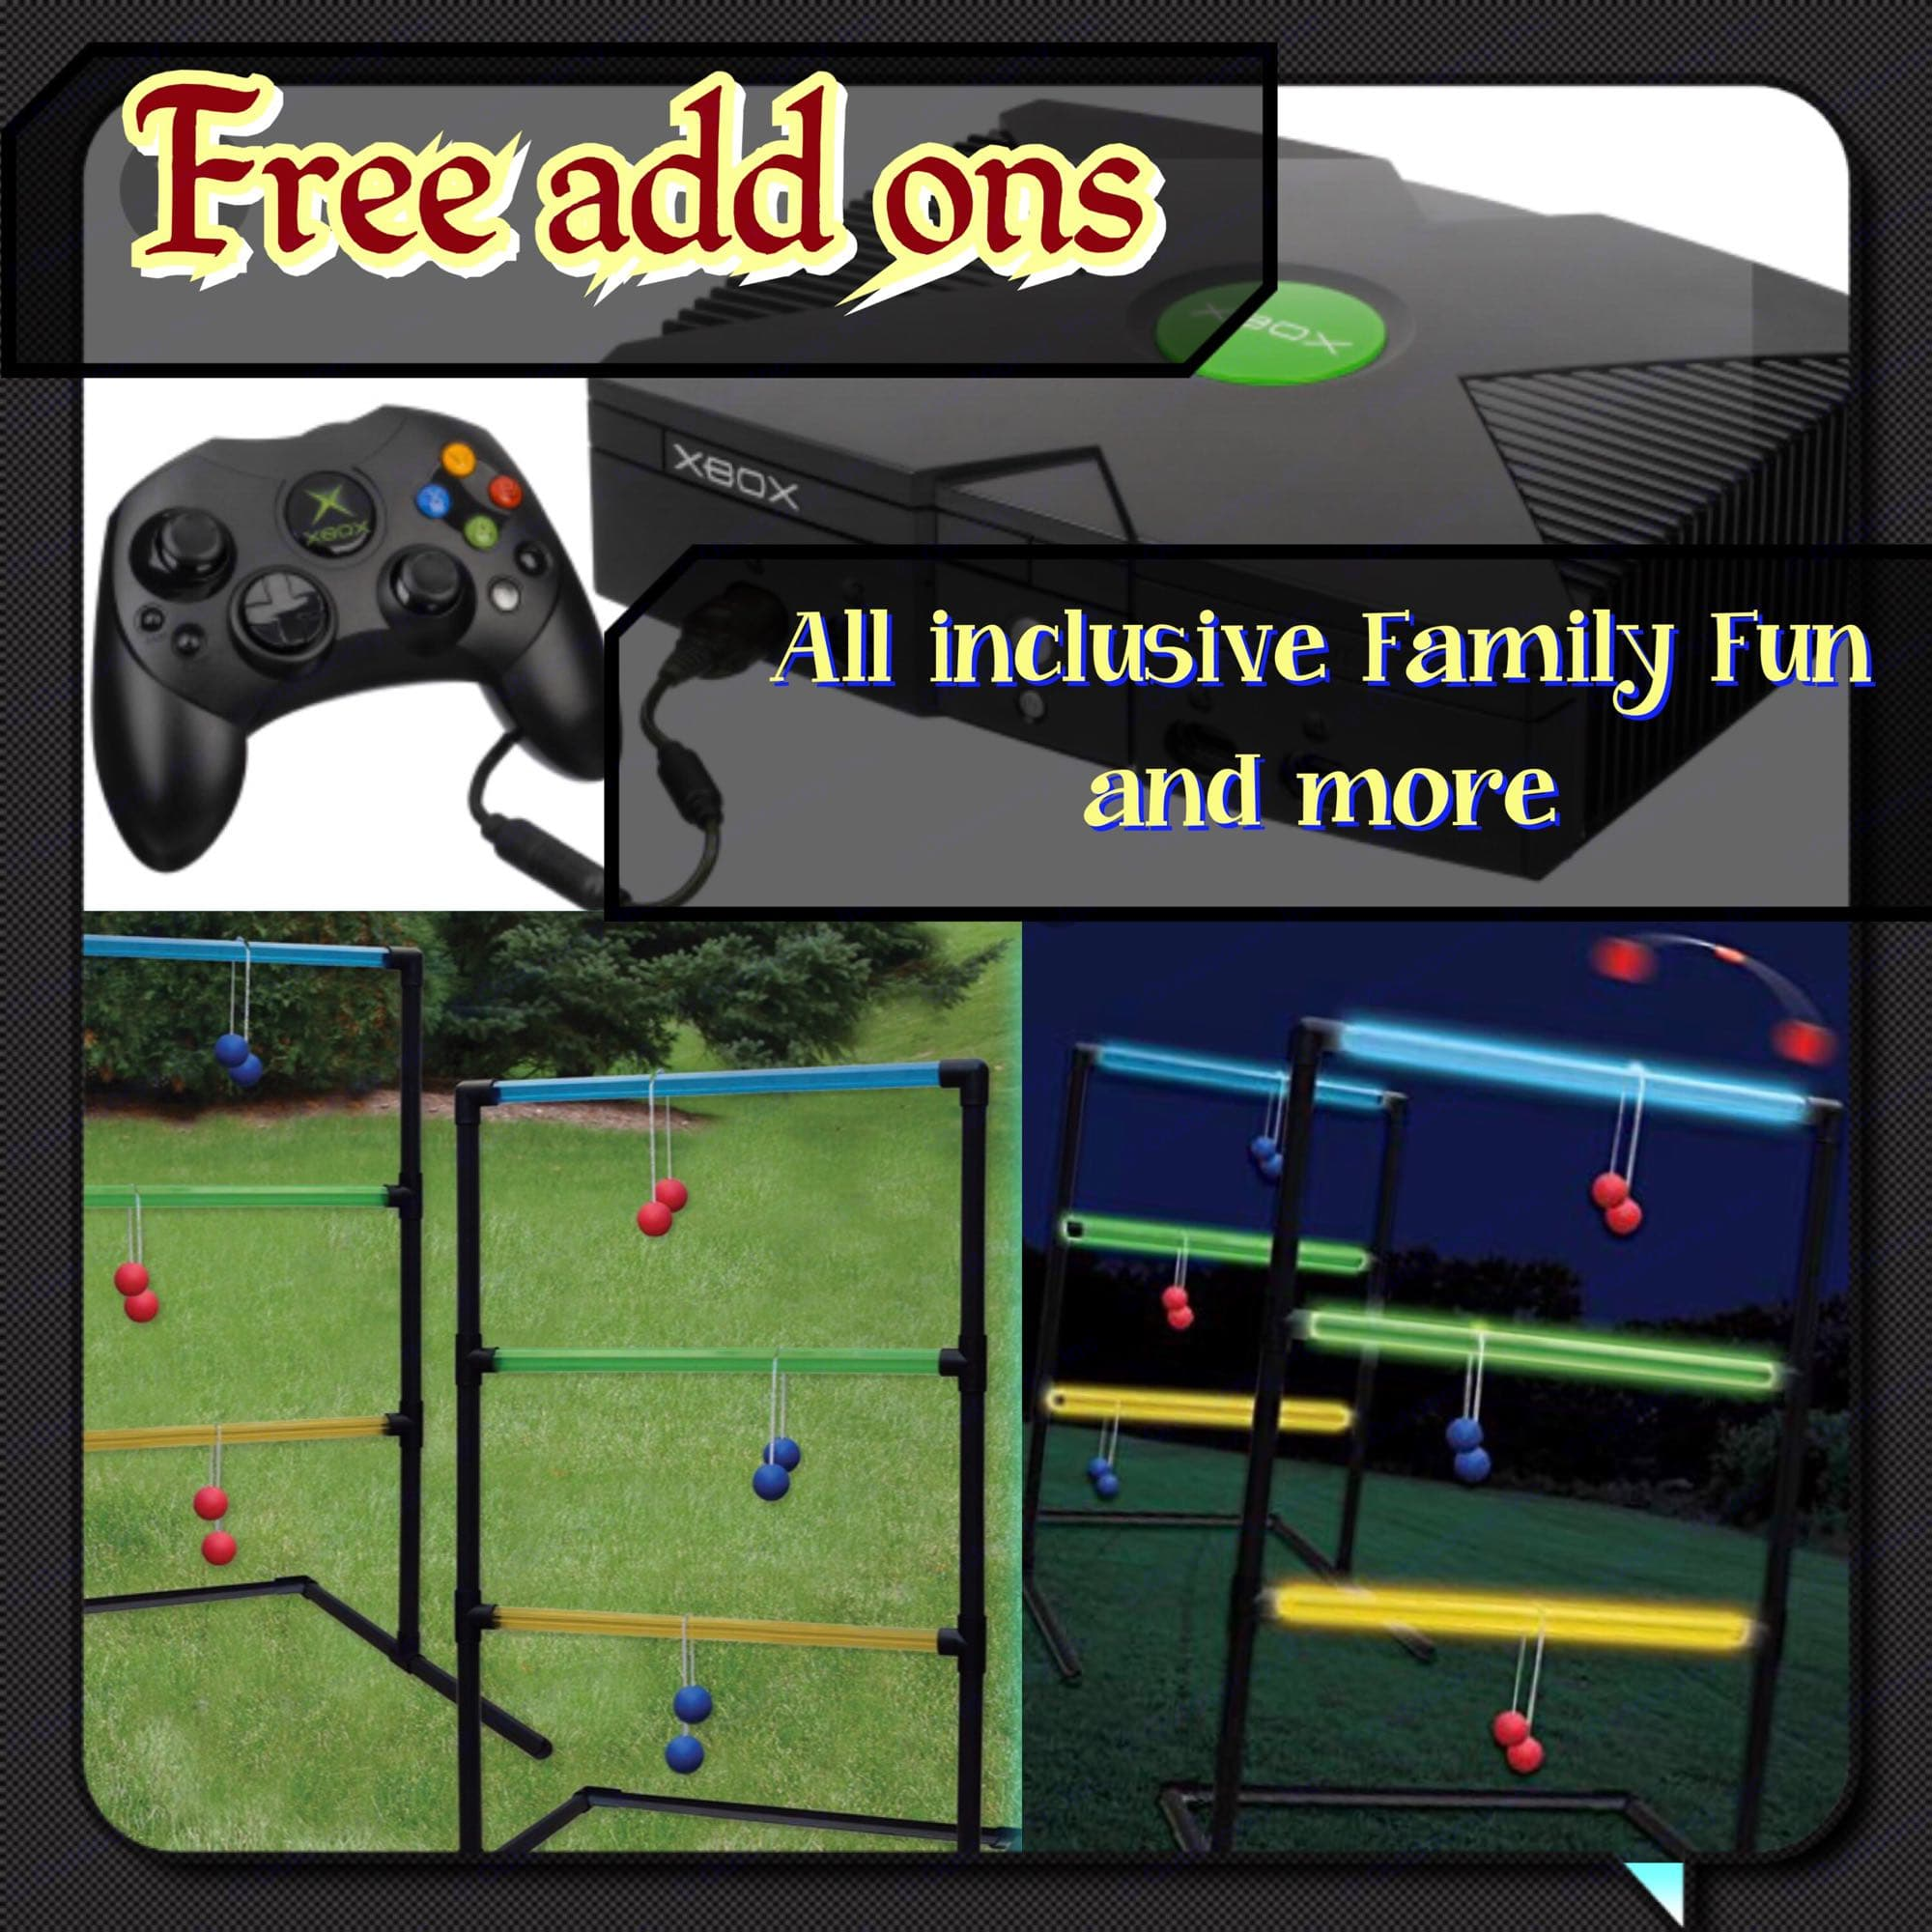 more lawn games included ladder ball Xbox  also include target ball lawn game  And a badminton set with birdies. Jayco Greyhawk 2007